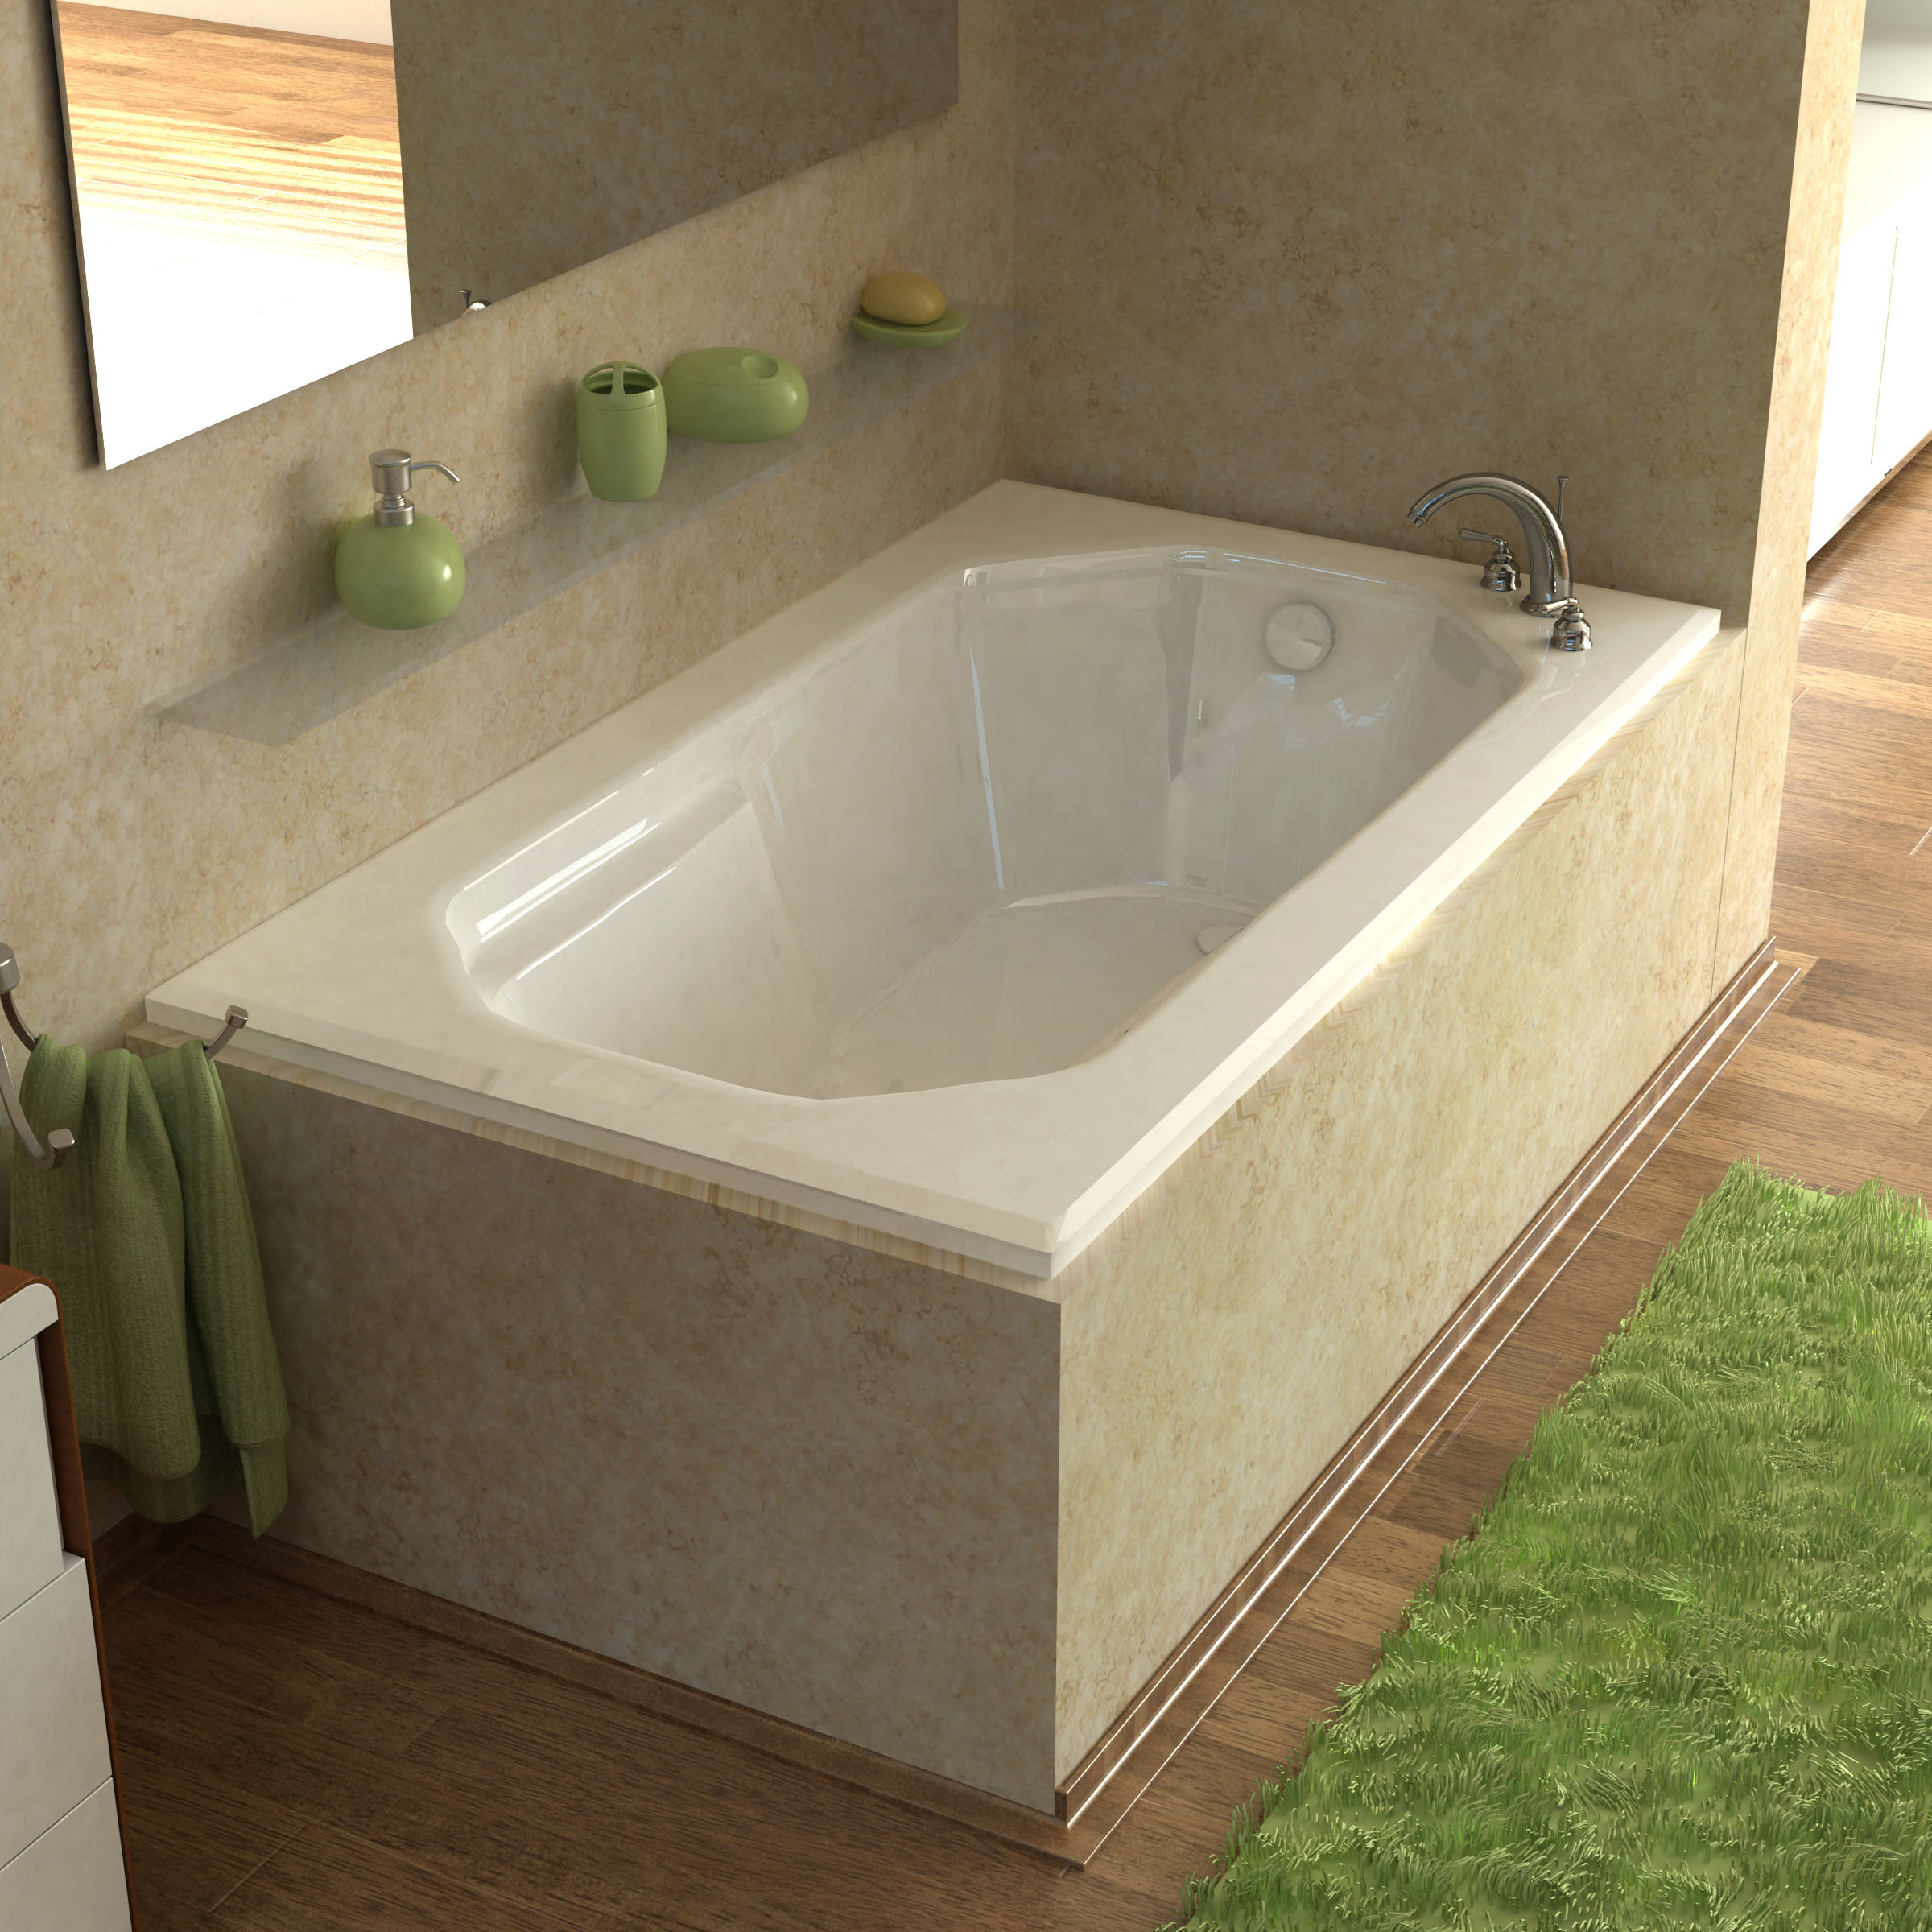 Venzi Irma 60 x 36 Rectangular Bathtub with Reversible Drain